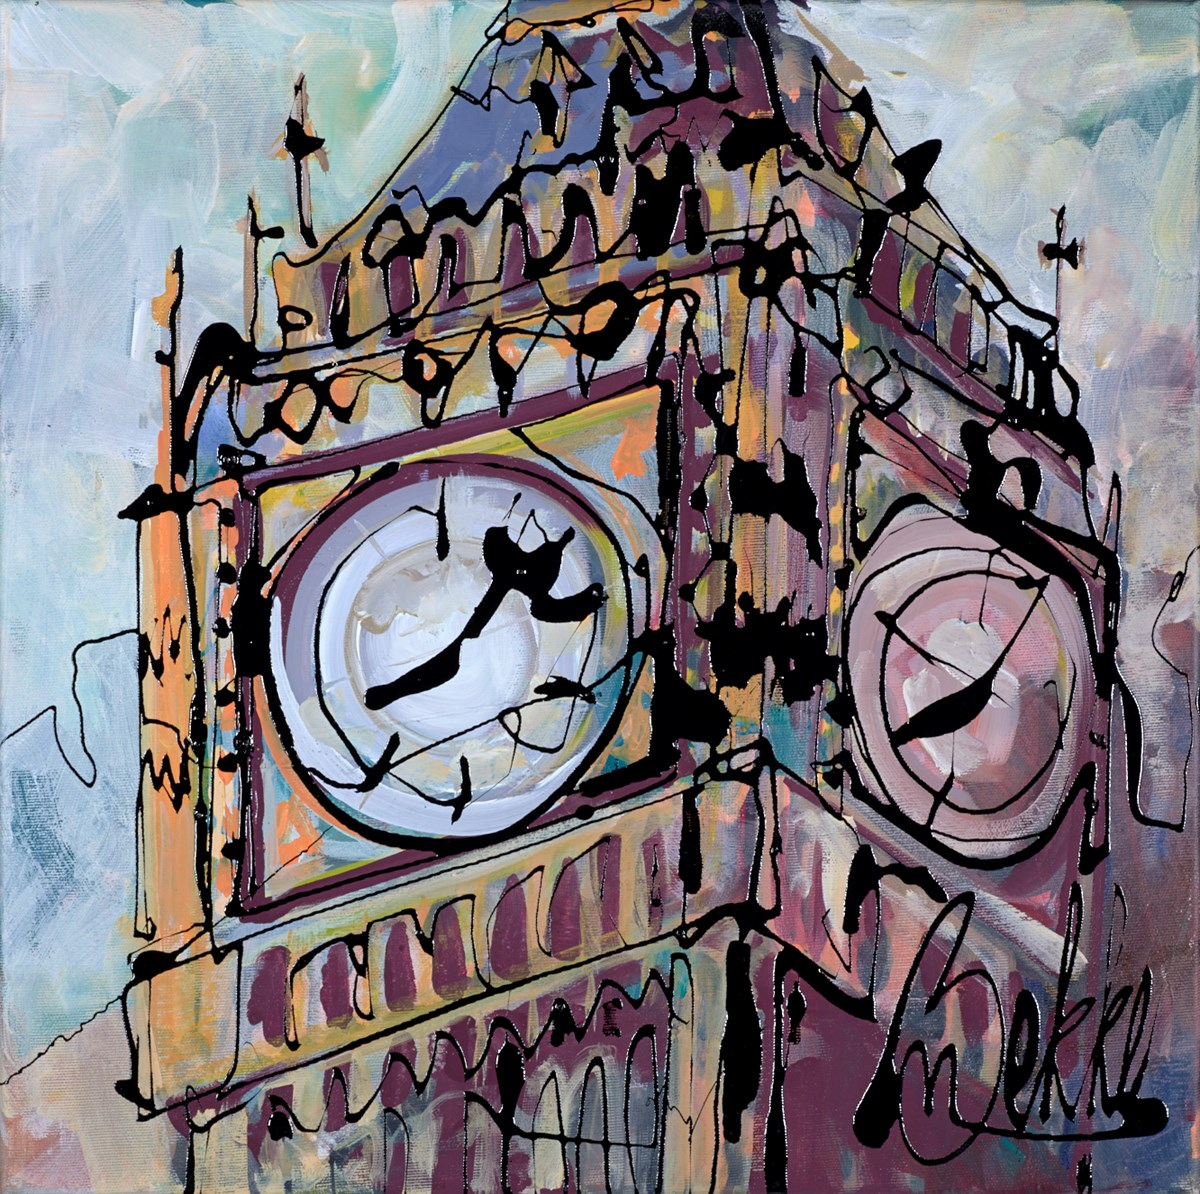 Ben O'Clock by marieke bekke -  sized 20x20 inches. Available from Whitewall Galleries